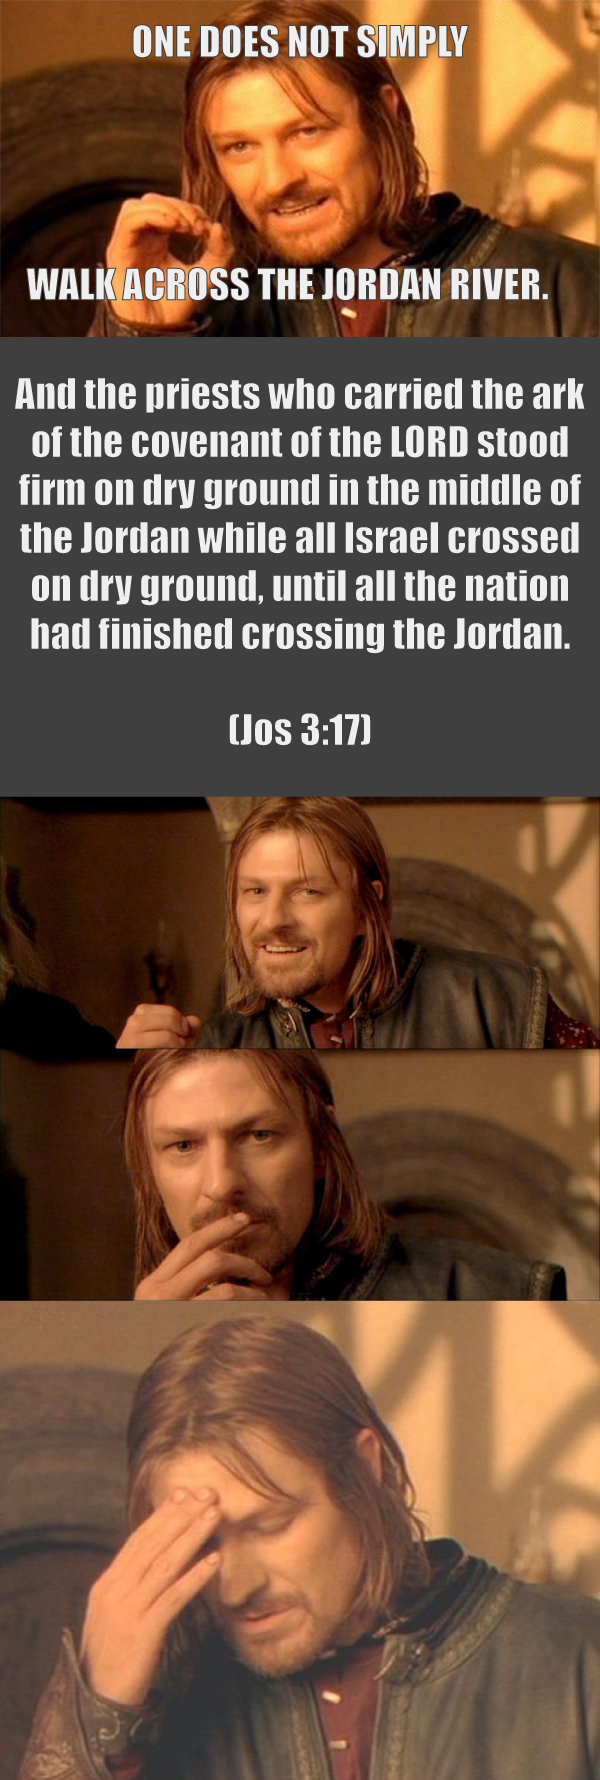 boromir-crossing-jordan